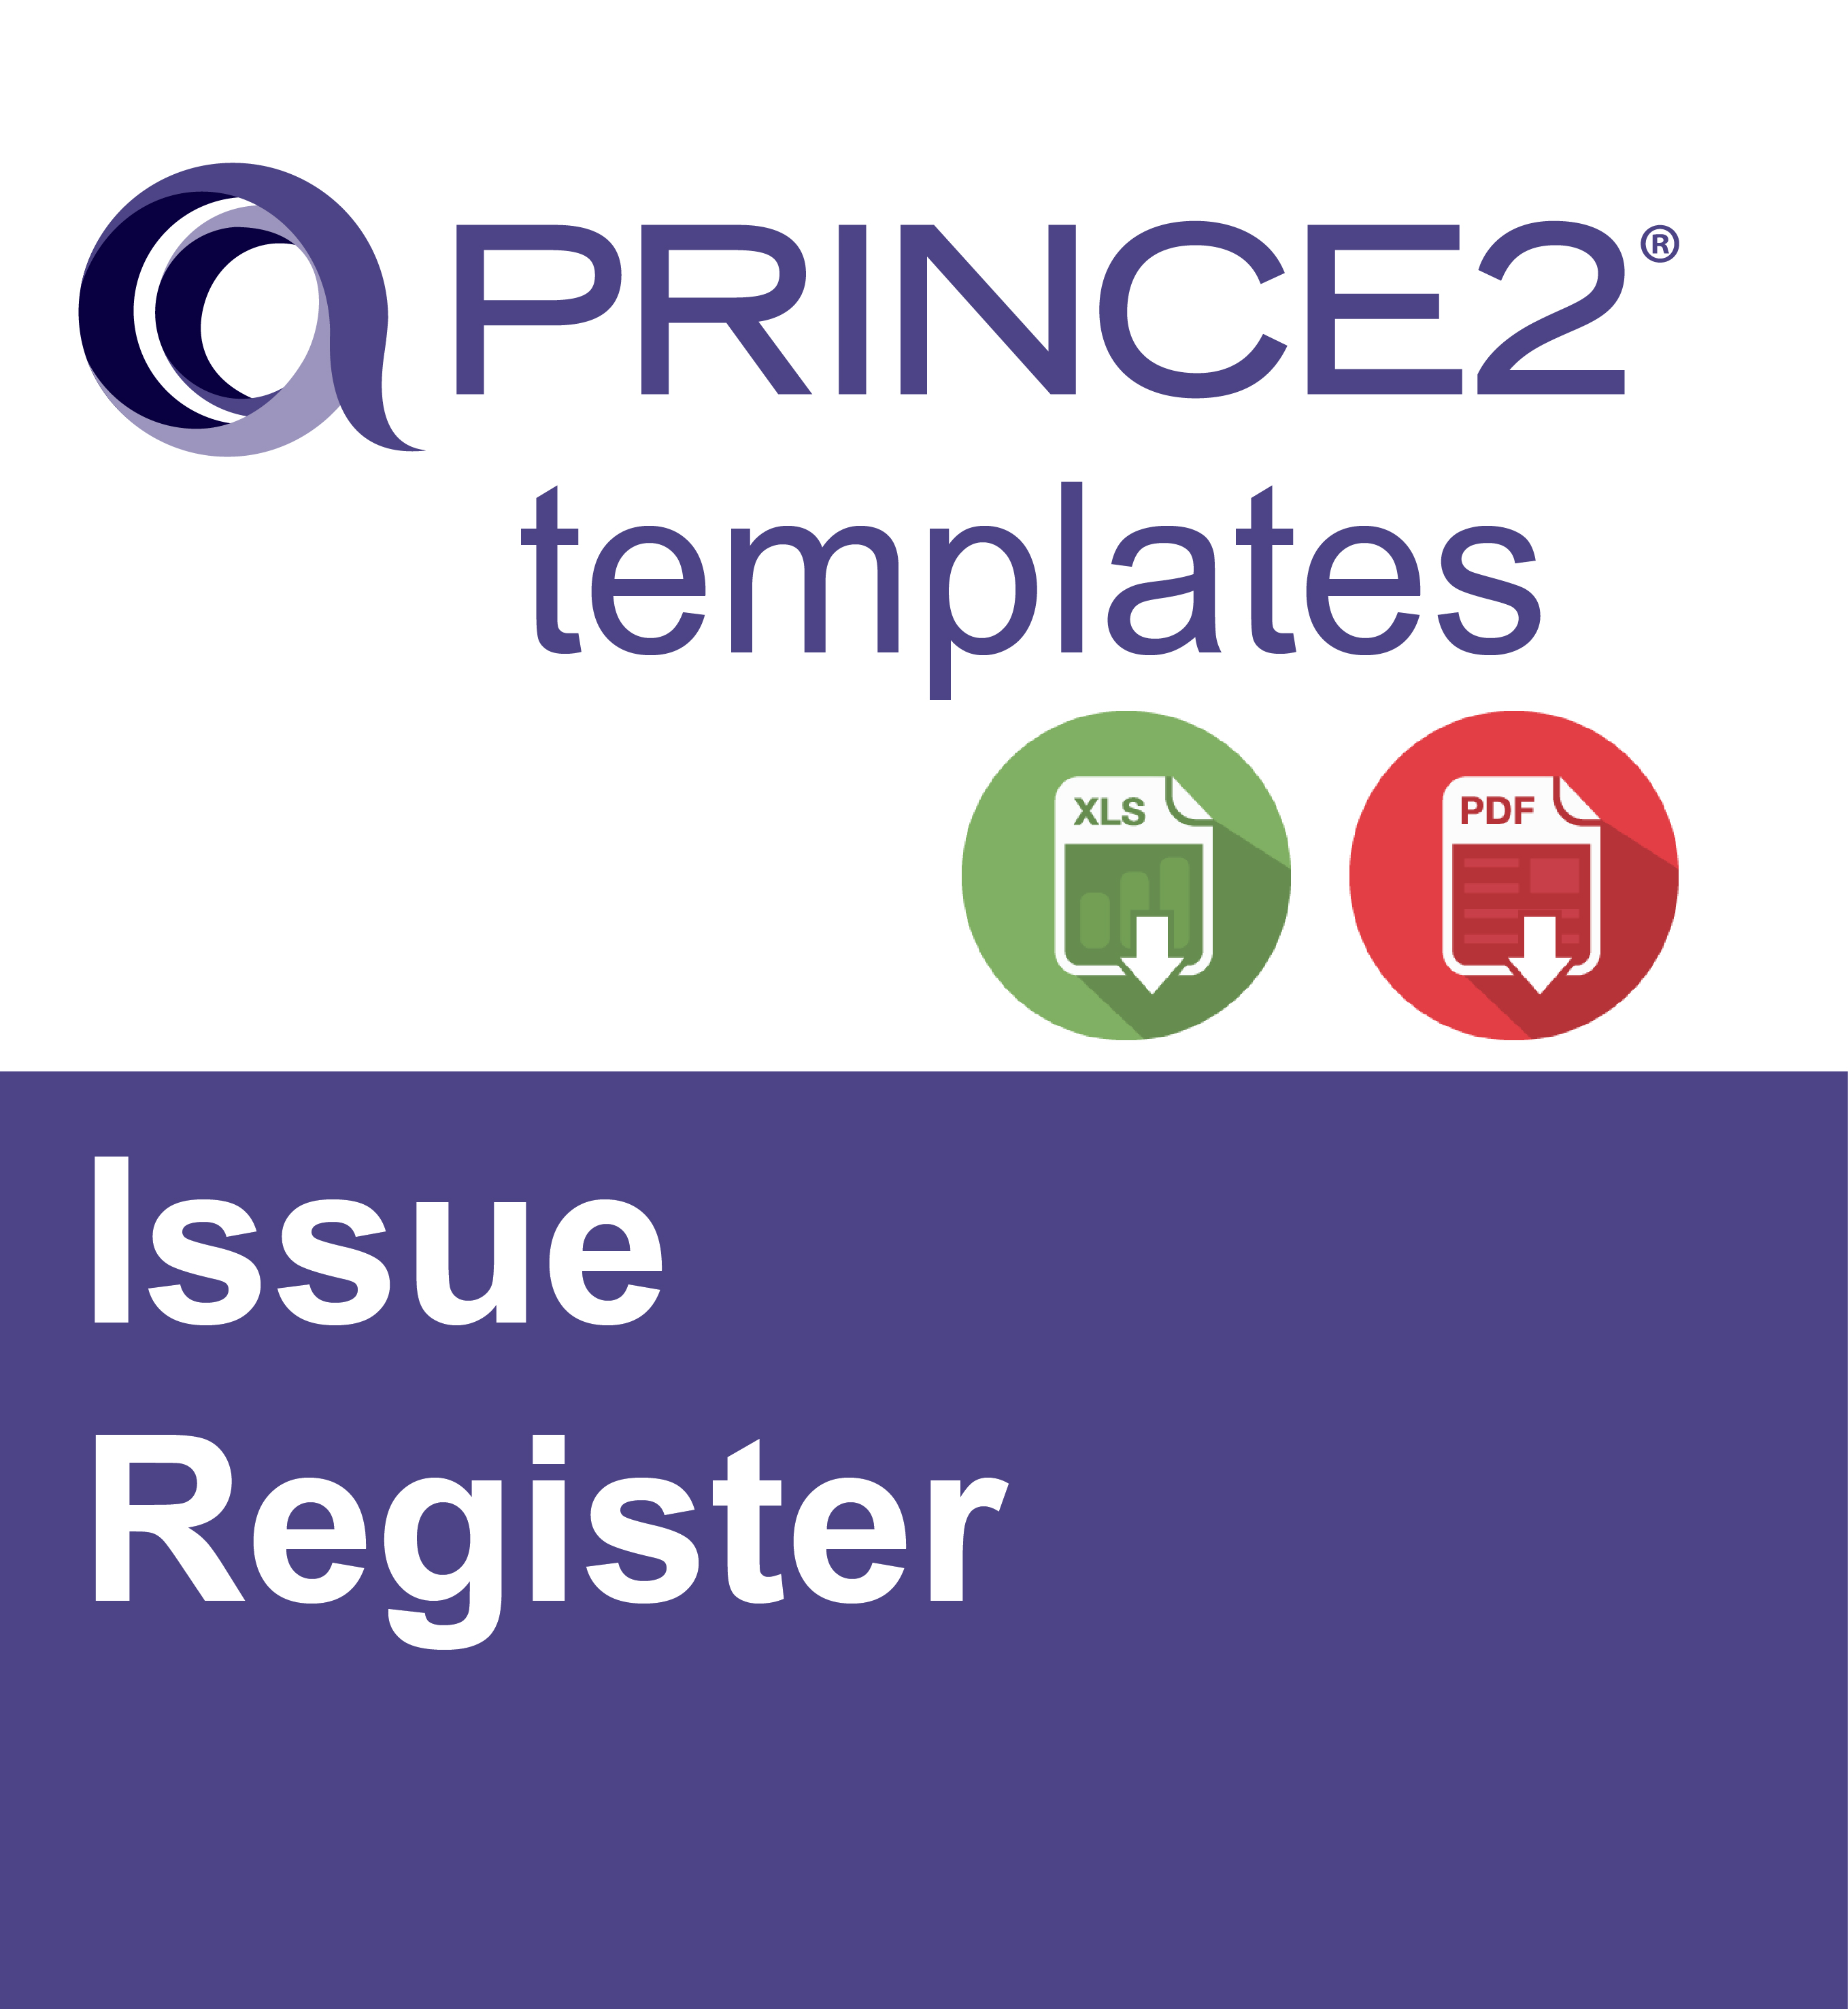 PRINCE2 Issue Register | eBalance